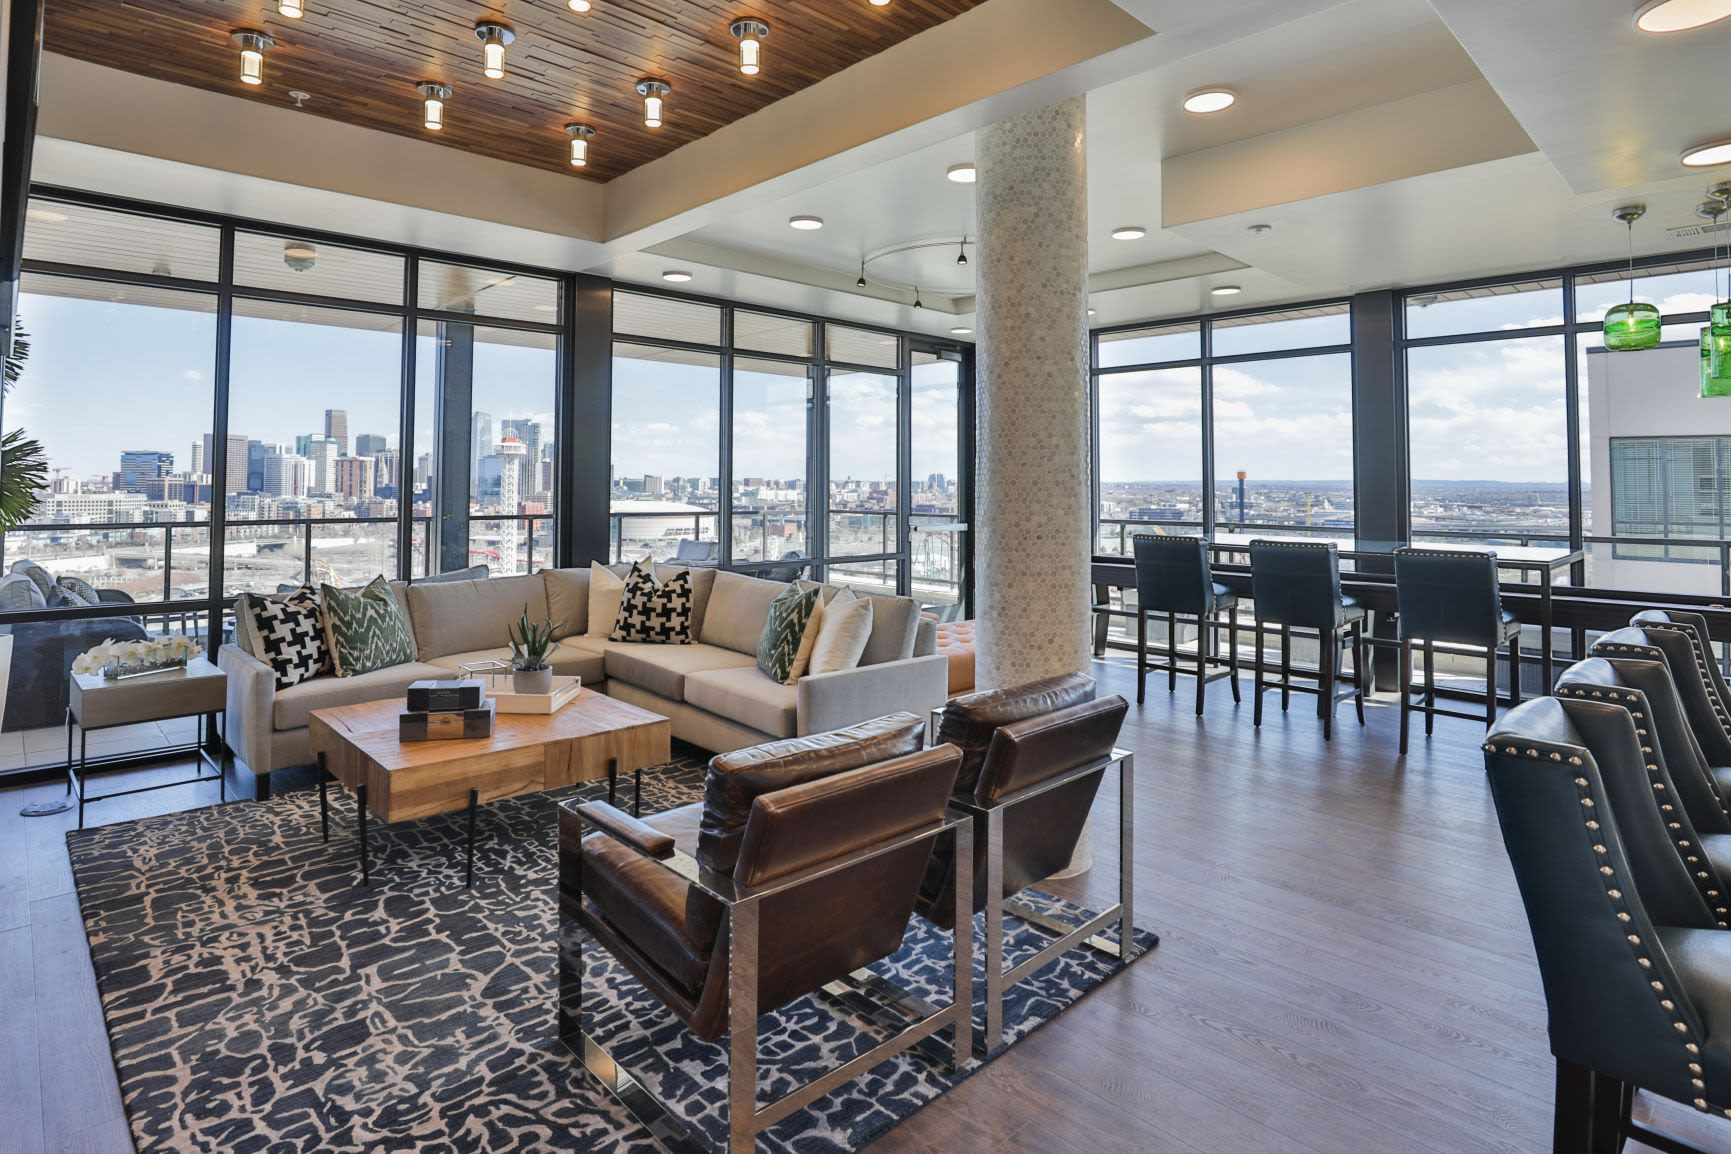 Comfortable seating with city views at The Alcott in Downtown Denver, Colorado